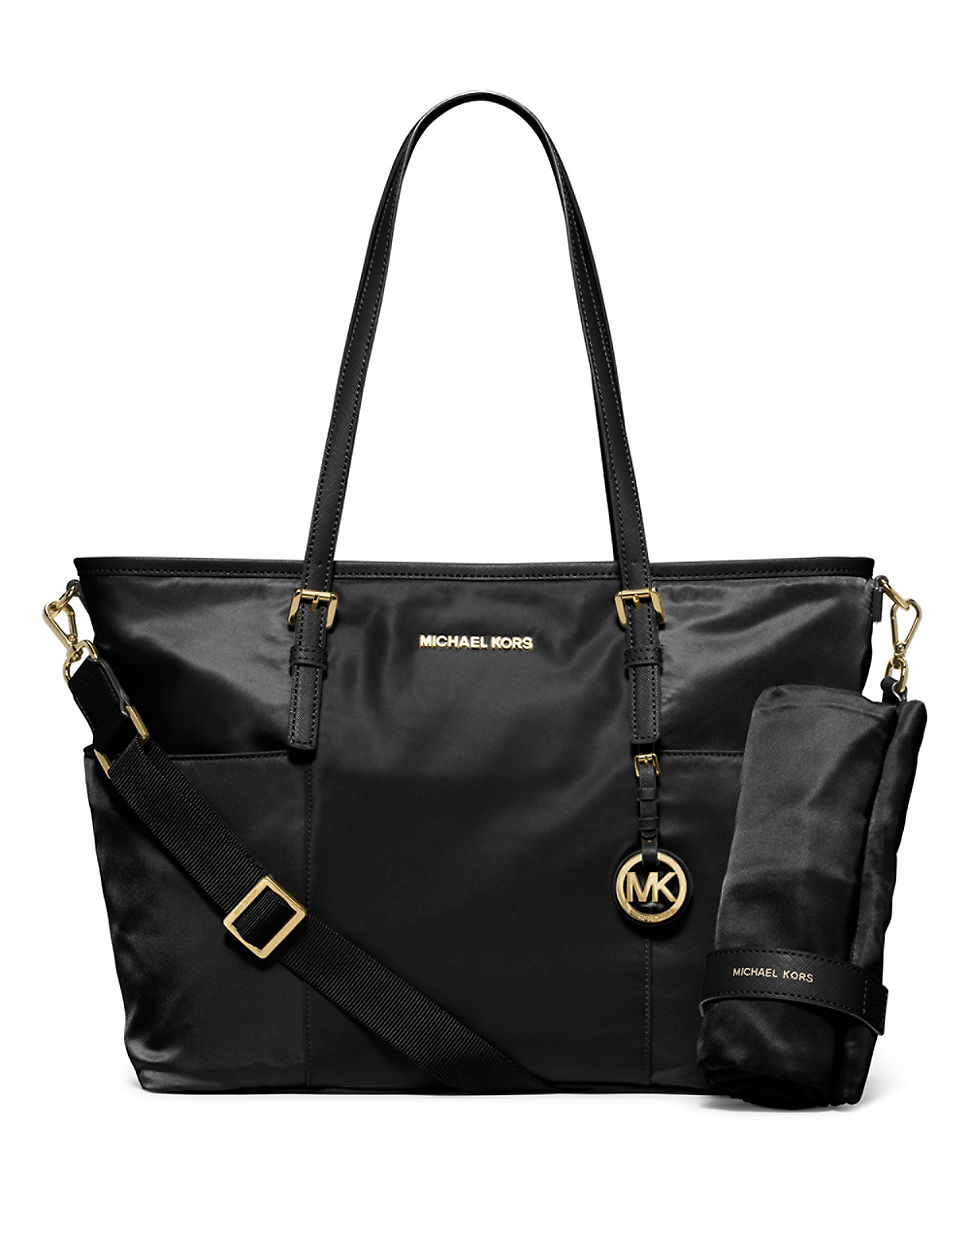 michael michael kors jet set large nylon diaper bag in black lyst. Black Bedroom Furniture Sets. Home Design Ideas